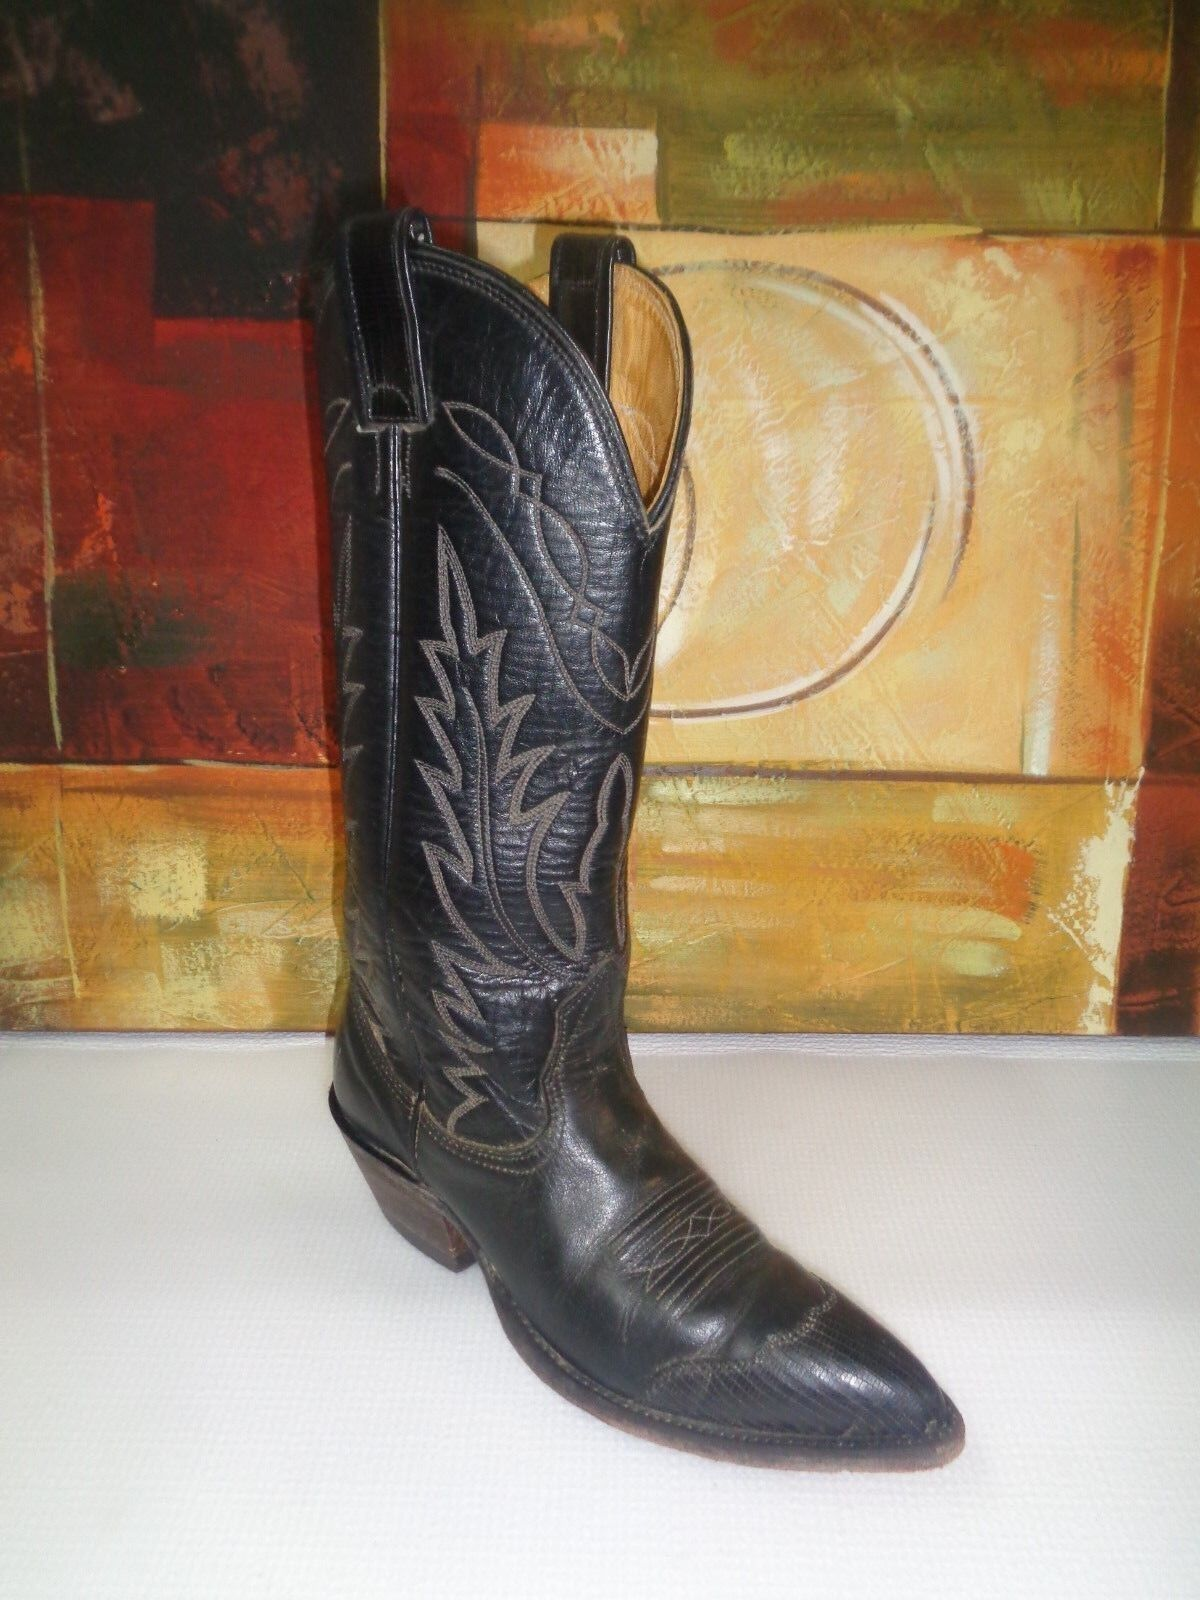 Man's/Woman's Nocona Vintage Cowboy discount Boots 5B Great variety discount Cowboy price Direct business 8c896f